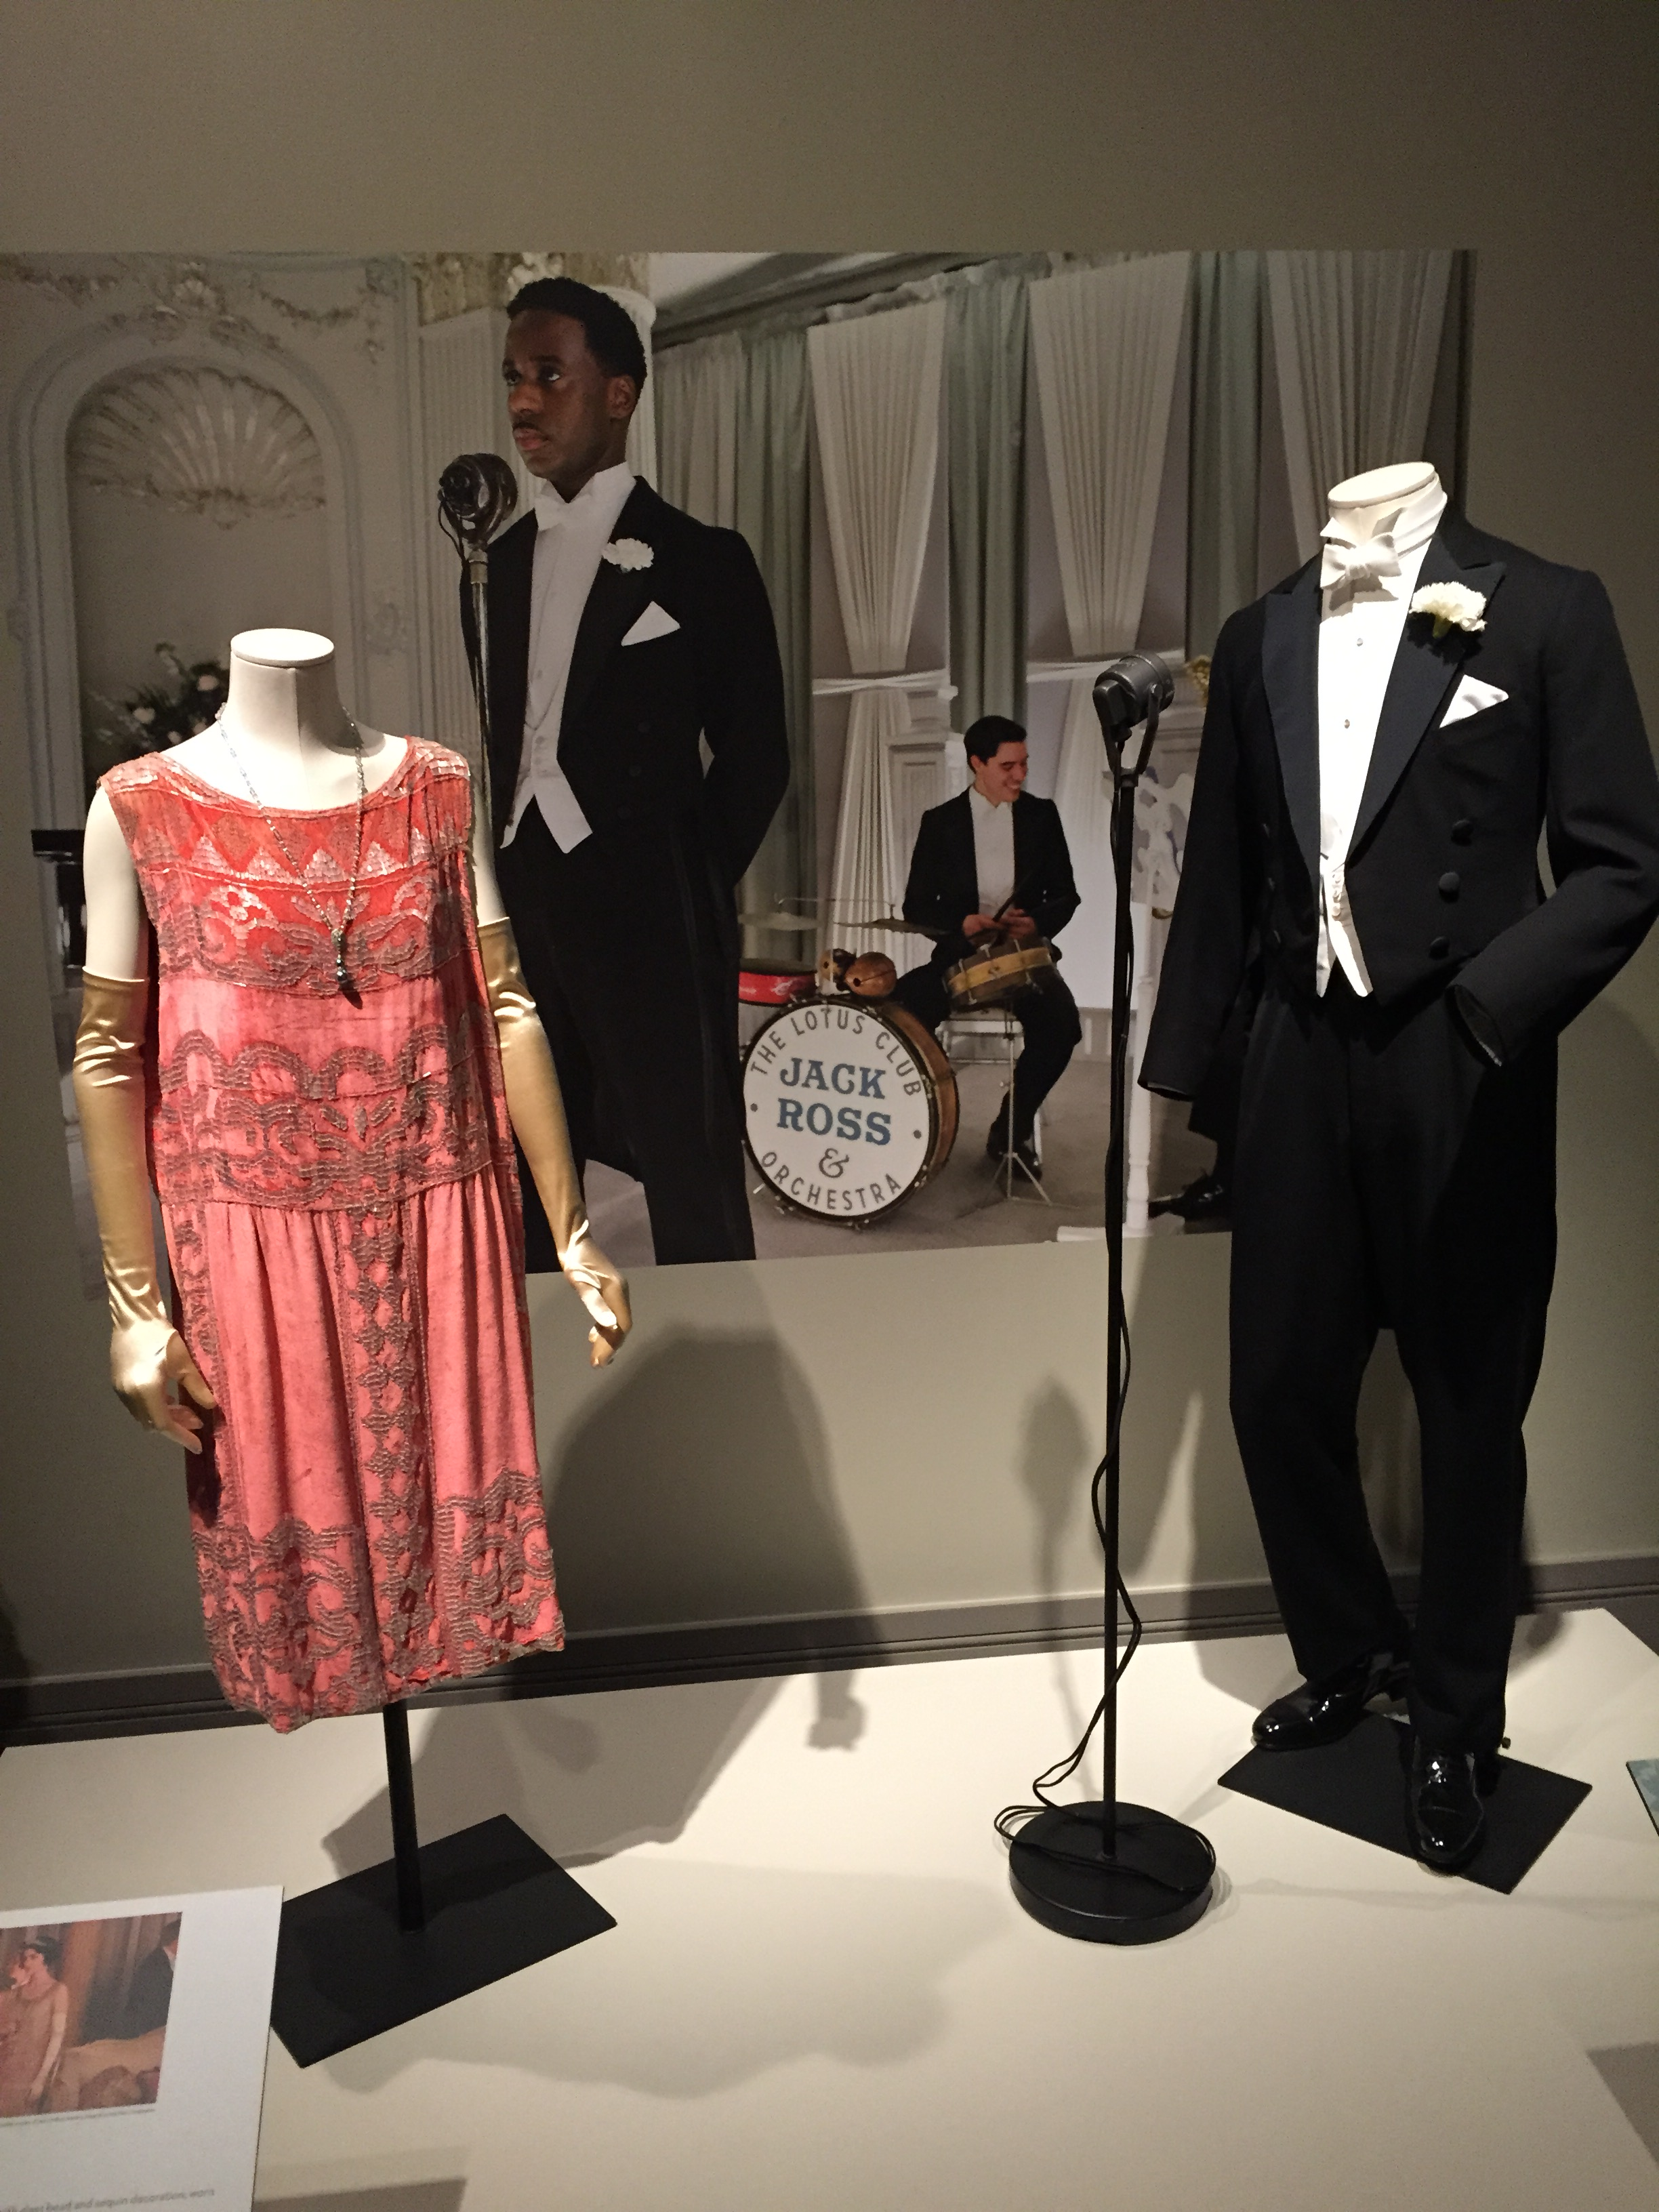 The lovely dress worn by Lady Rose MacClare when dancing to the music of Jack Ross.